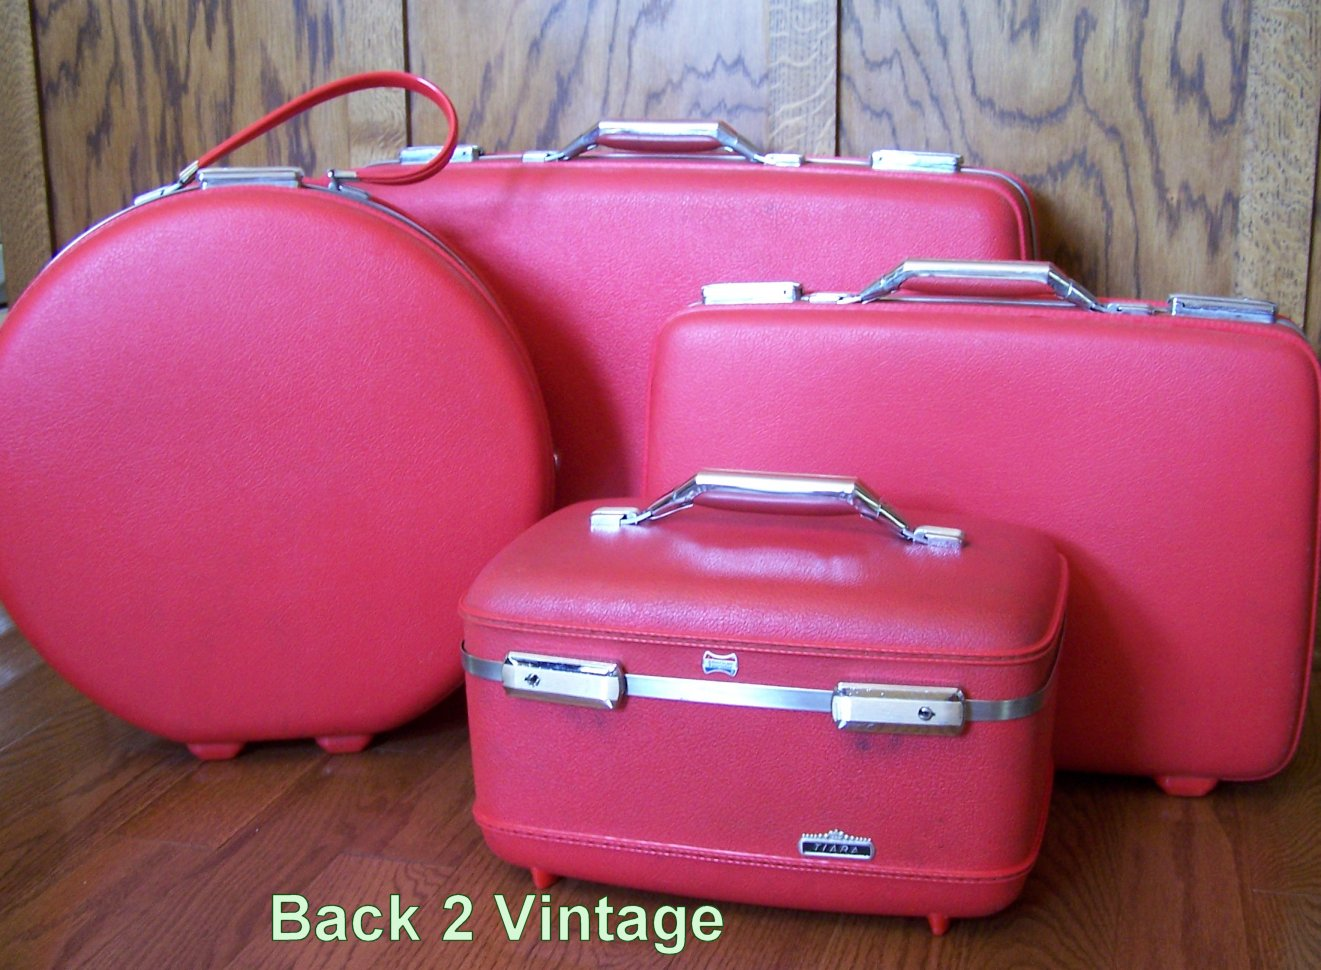 Vintage American Tourister Luggage Set | Luggage And Suitcases